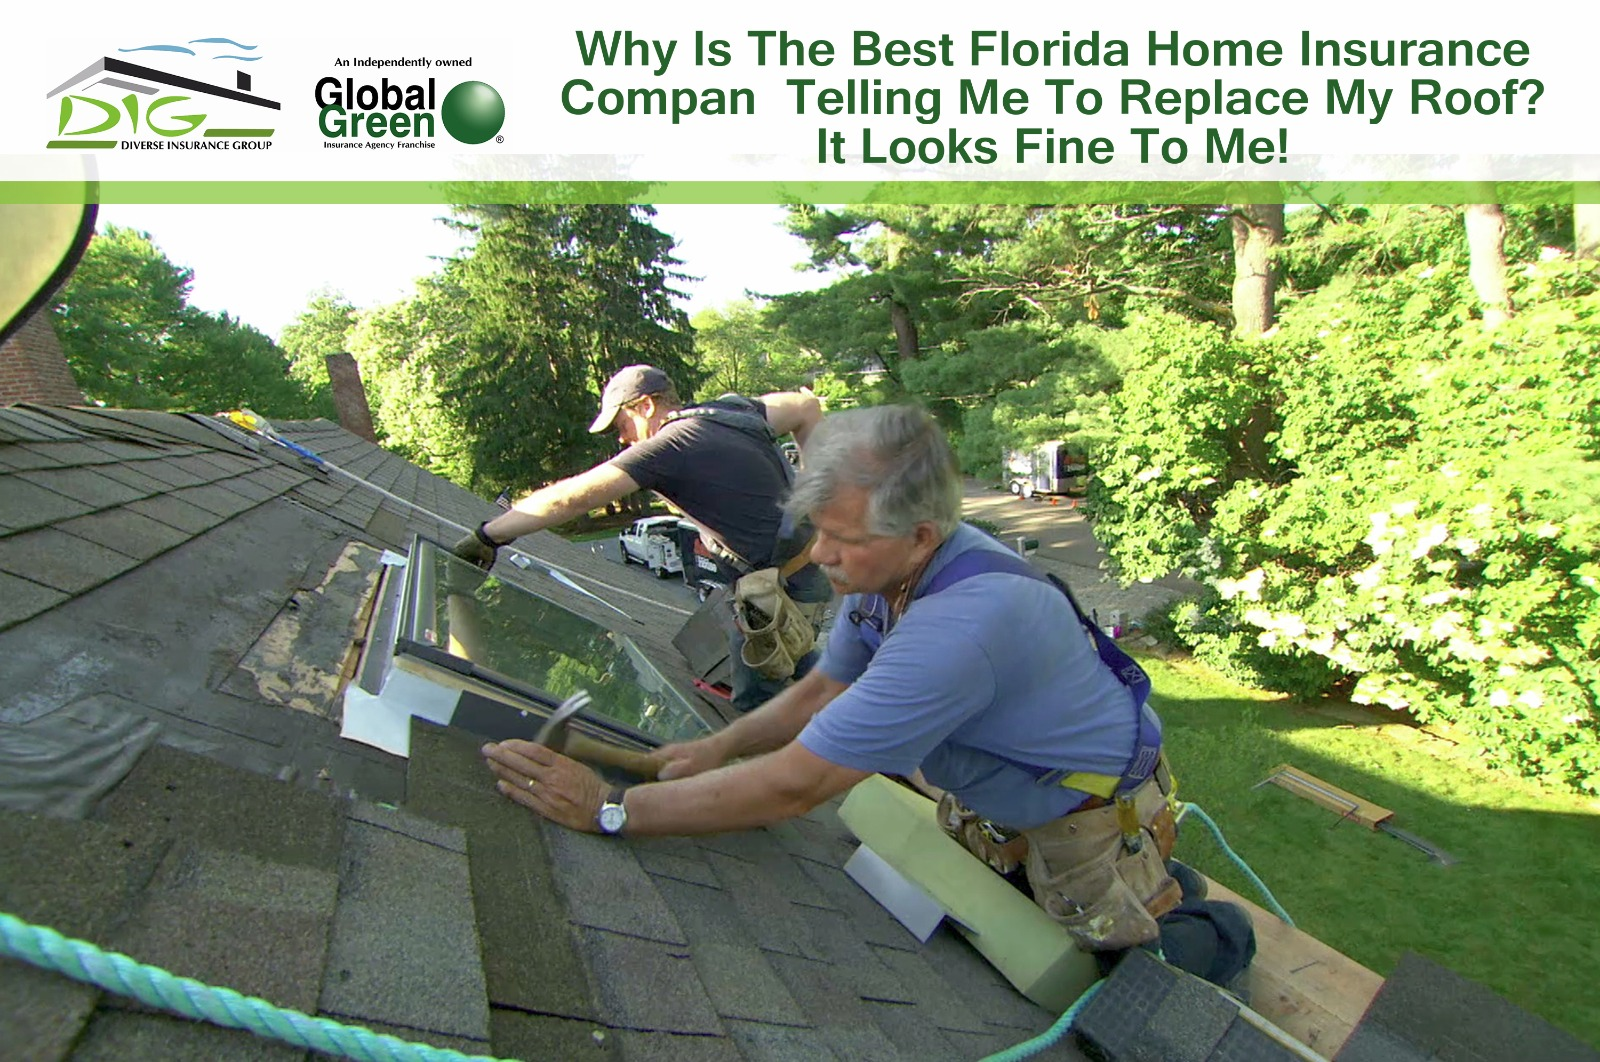 why is the best florida home insurance company telling me to replace your roof it looks fine to. Black Bedroom Furniture Sets. Home Design Ideas